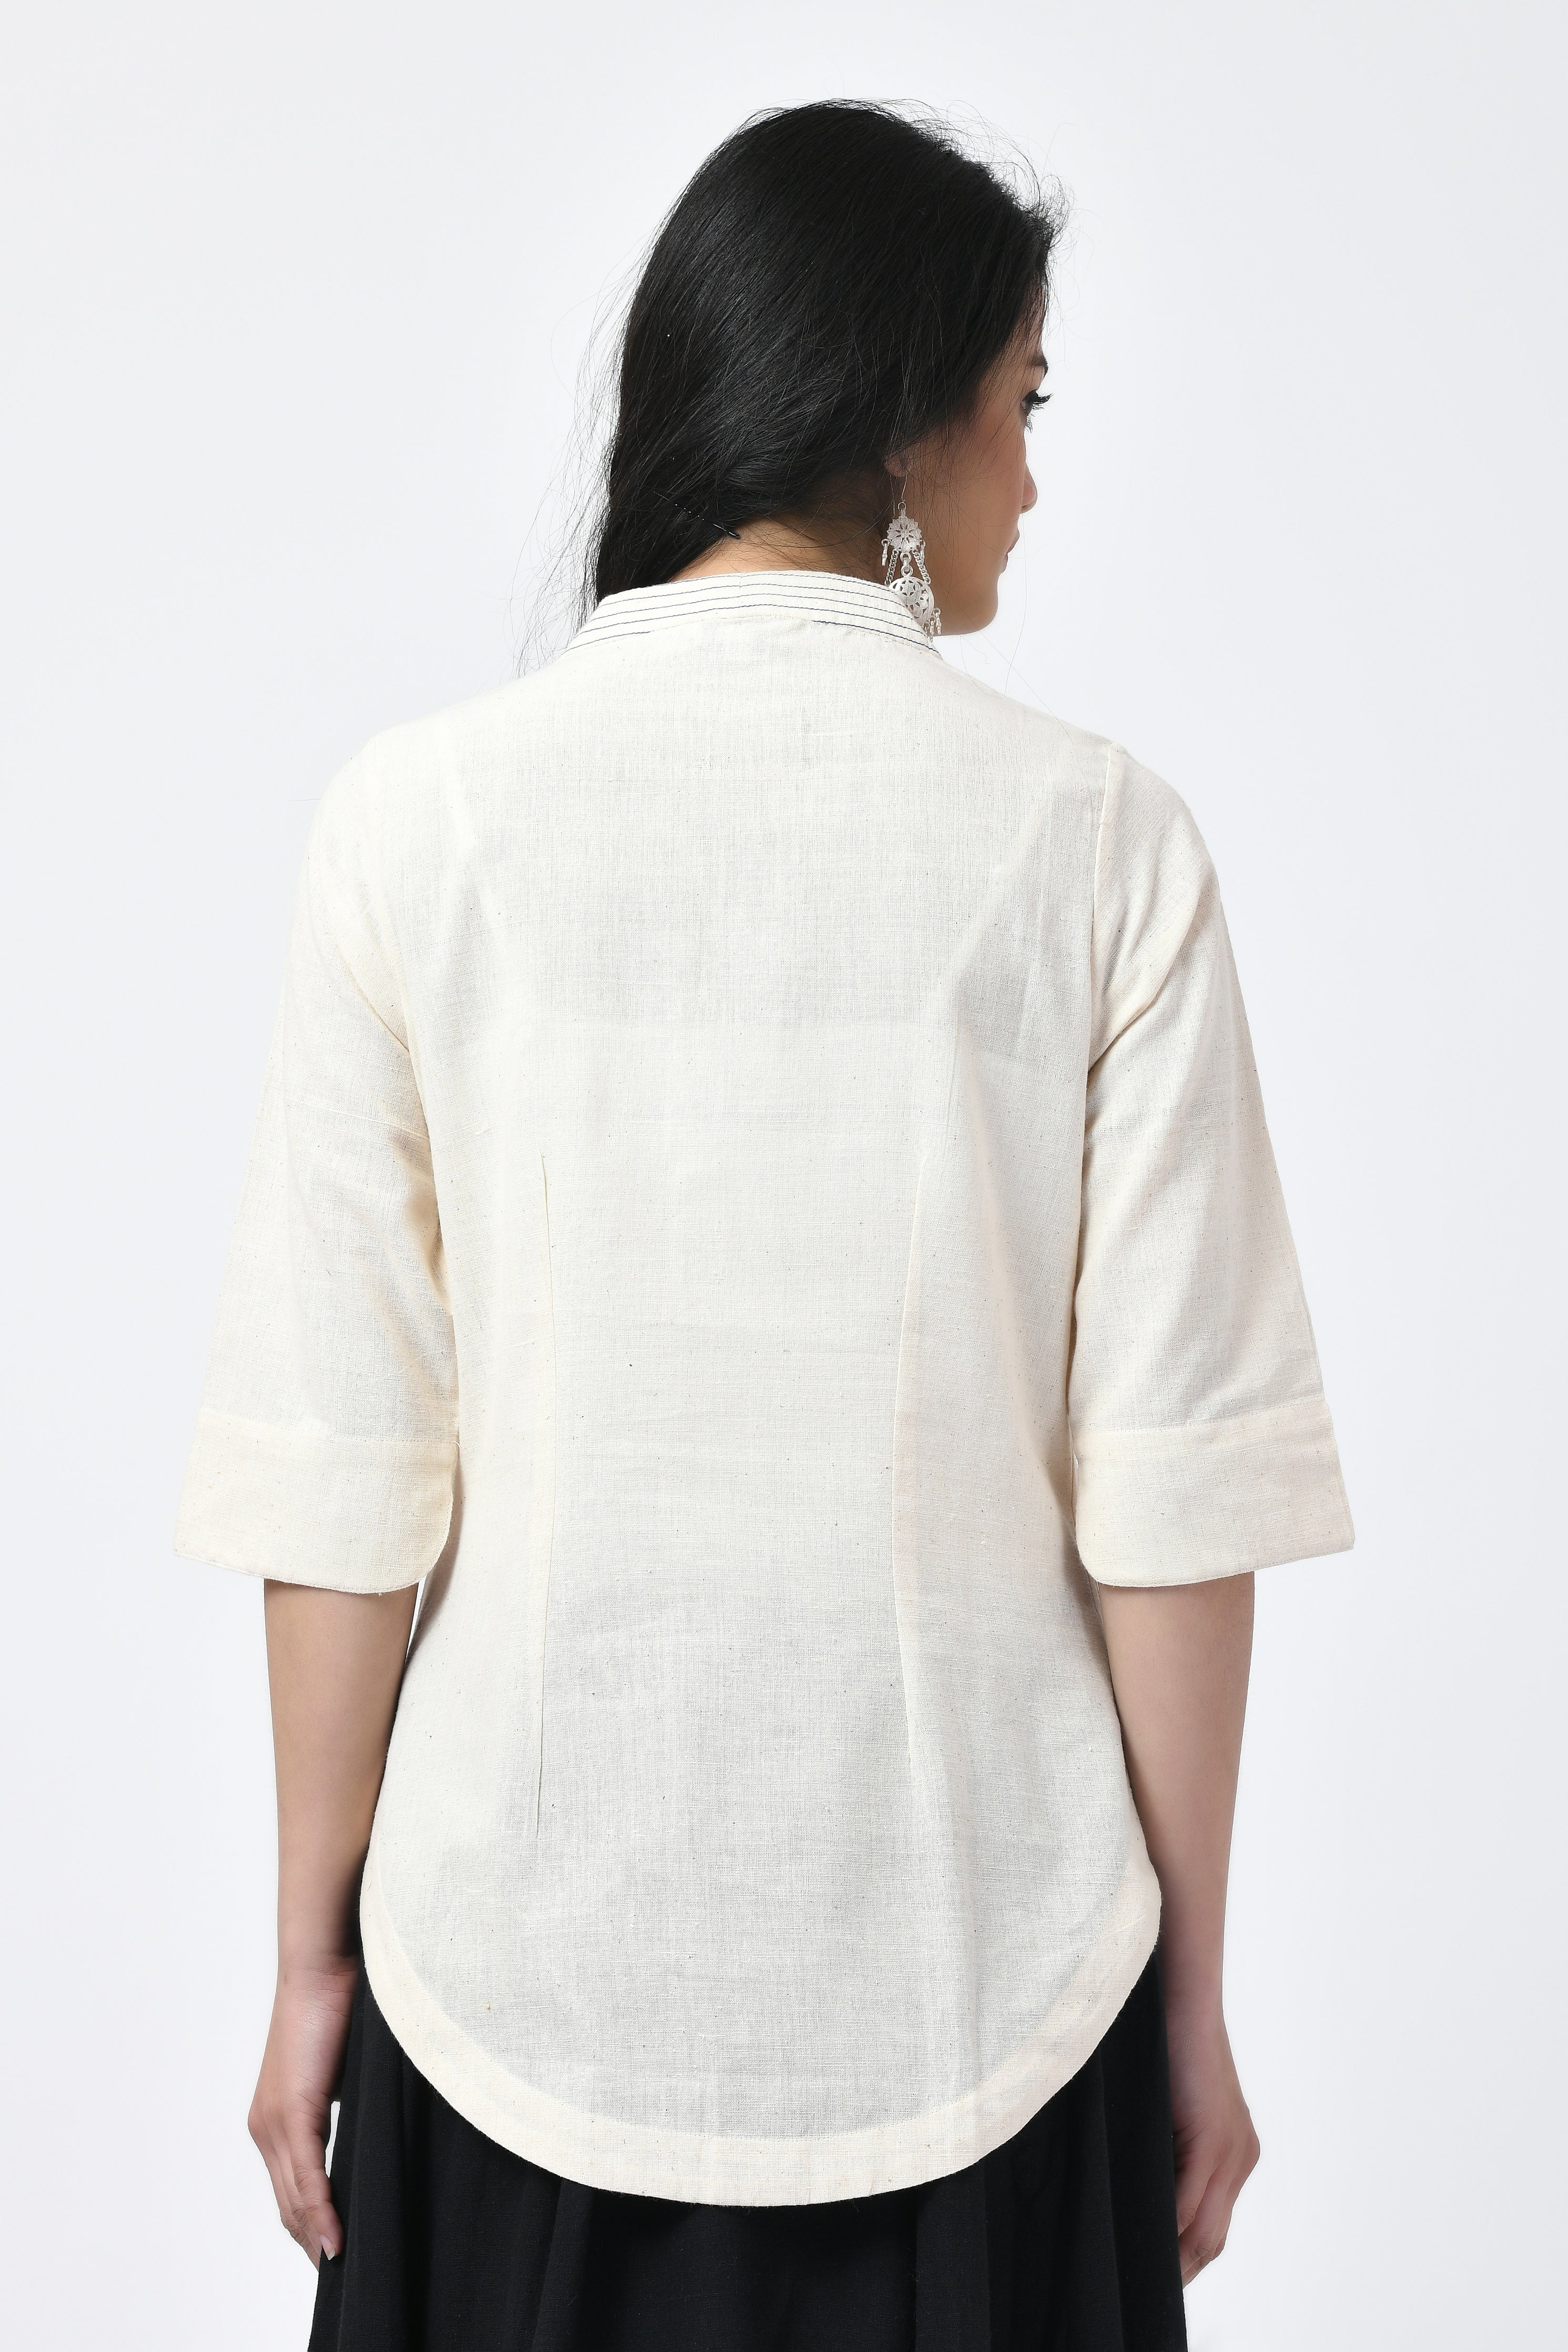 Hand Embroidered Natural Top